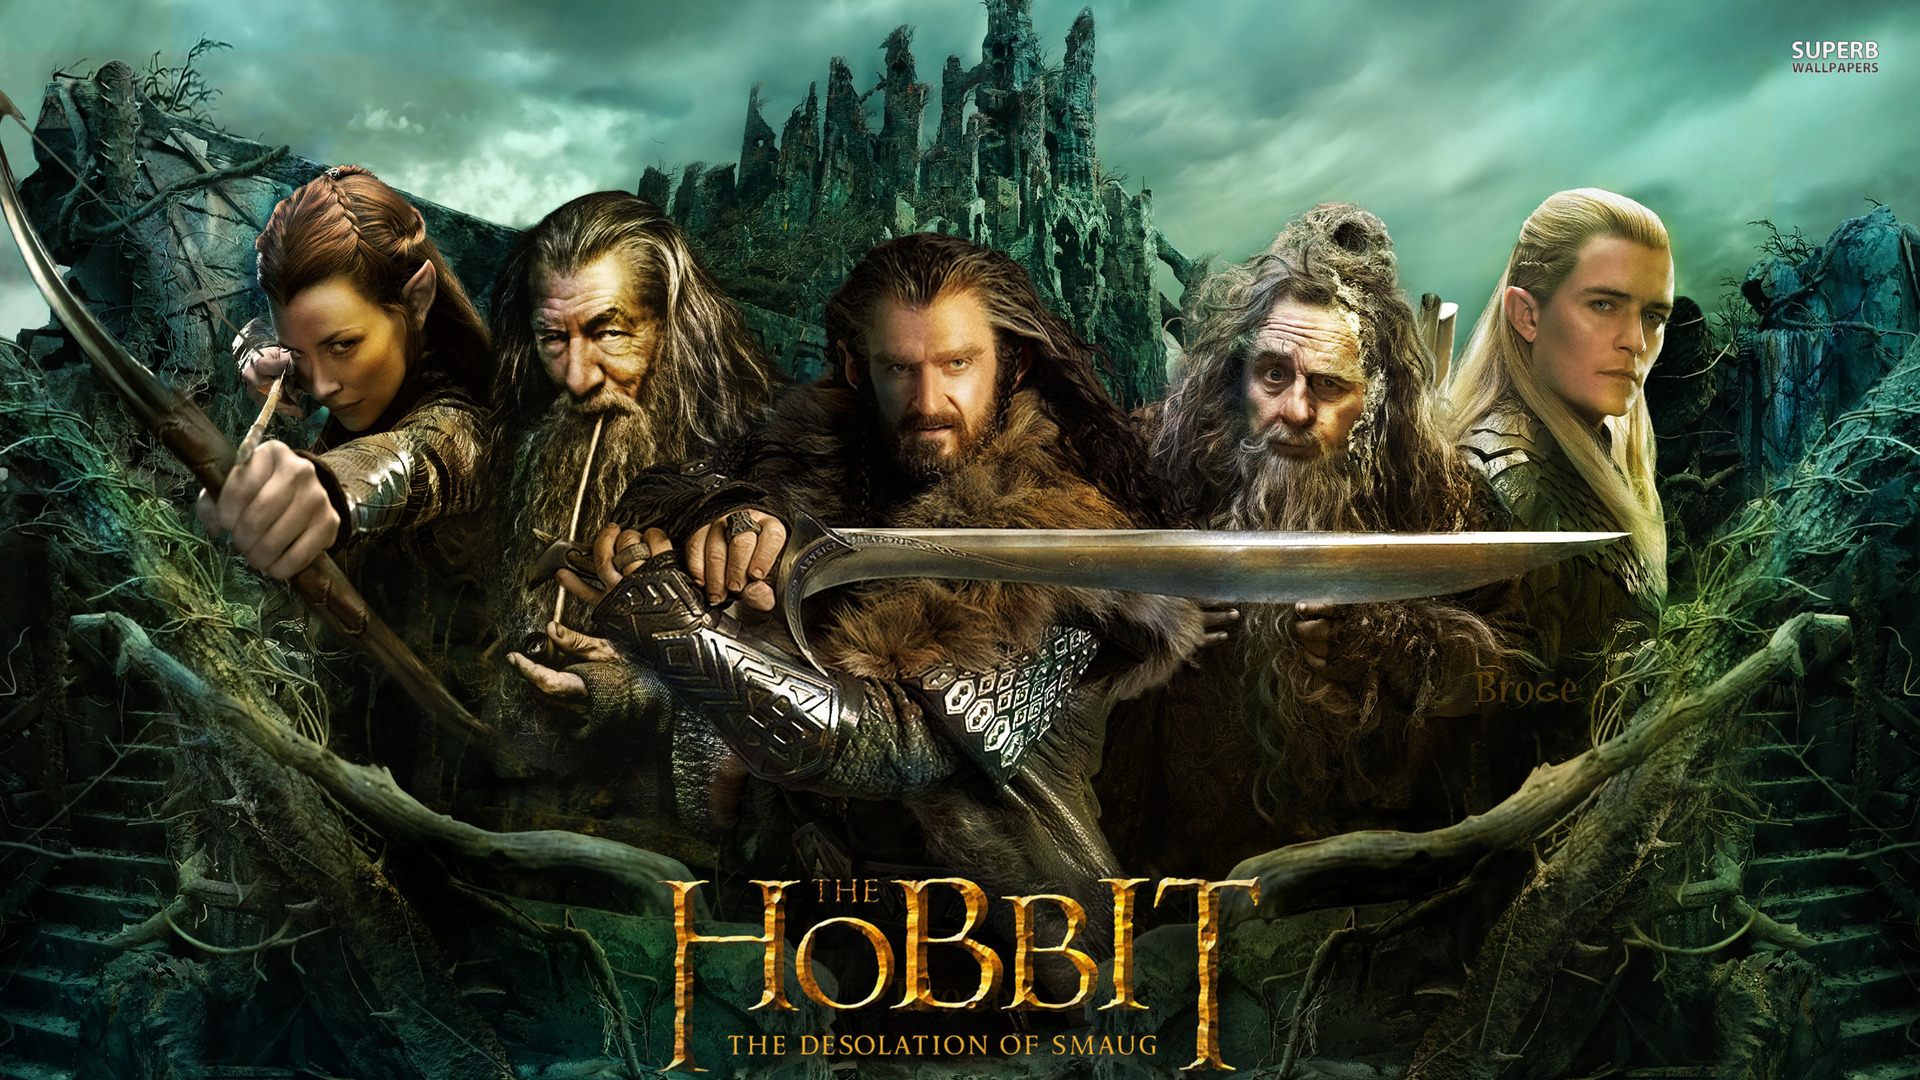 Hobbit The Desolation Of Smaug Movie Wallpaper 2658   Ongur 1920x1080